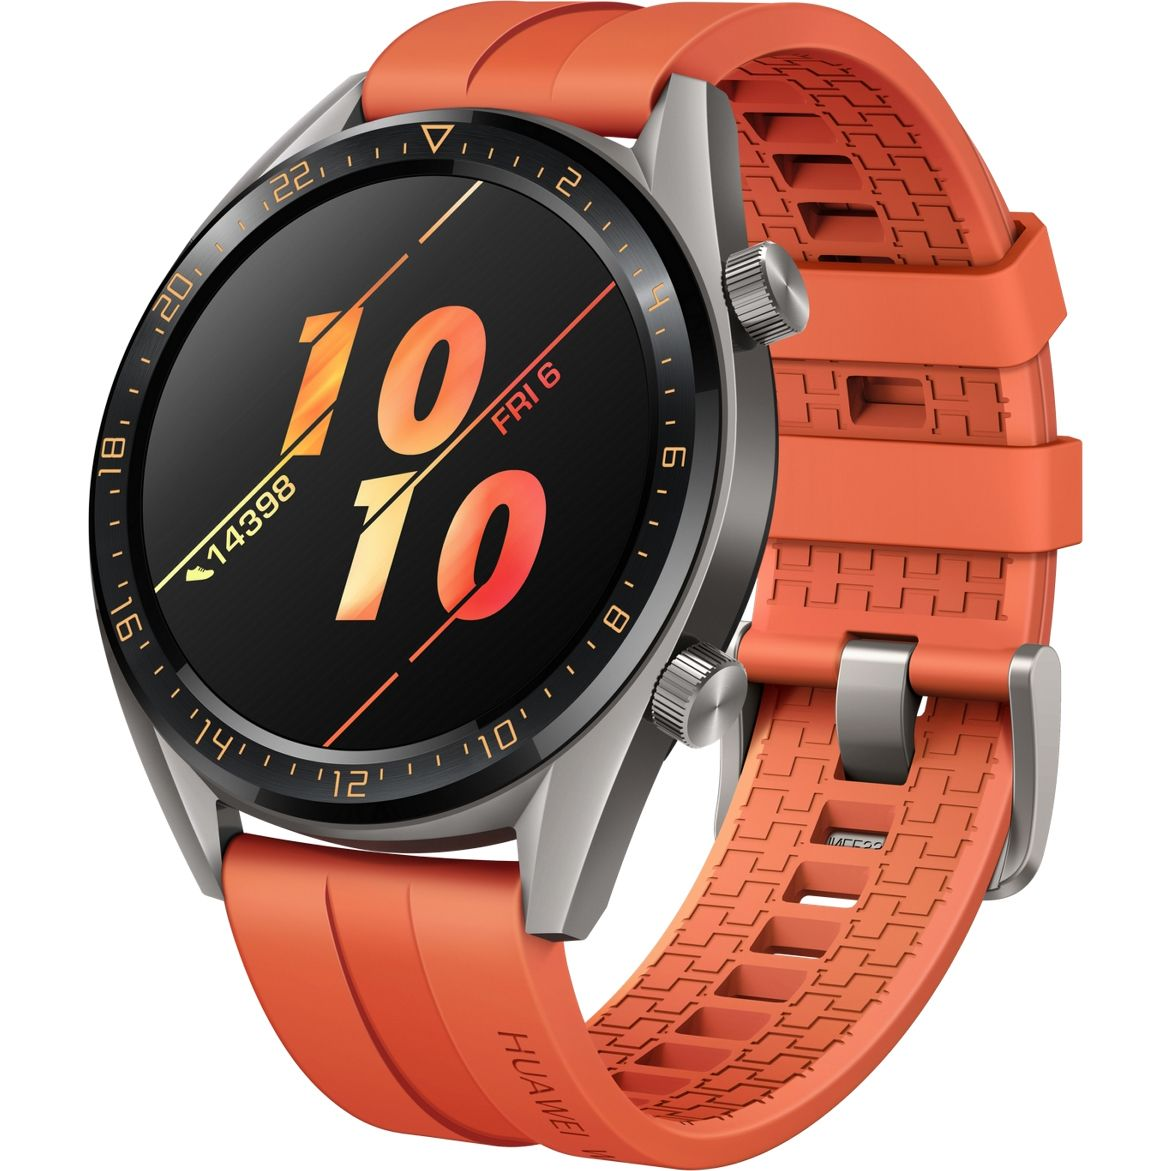 Ceas Smartwatch Huawei Watch GT, GPS, HR, 46mm, Titanium Grey Stainless Steel, Curea Orange